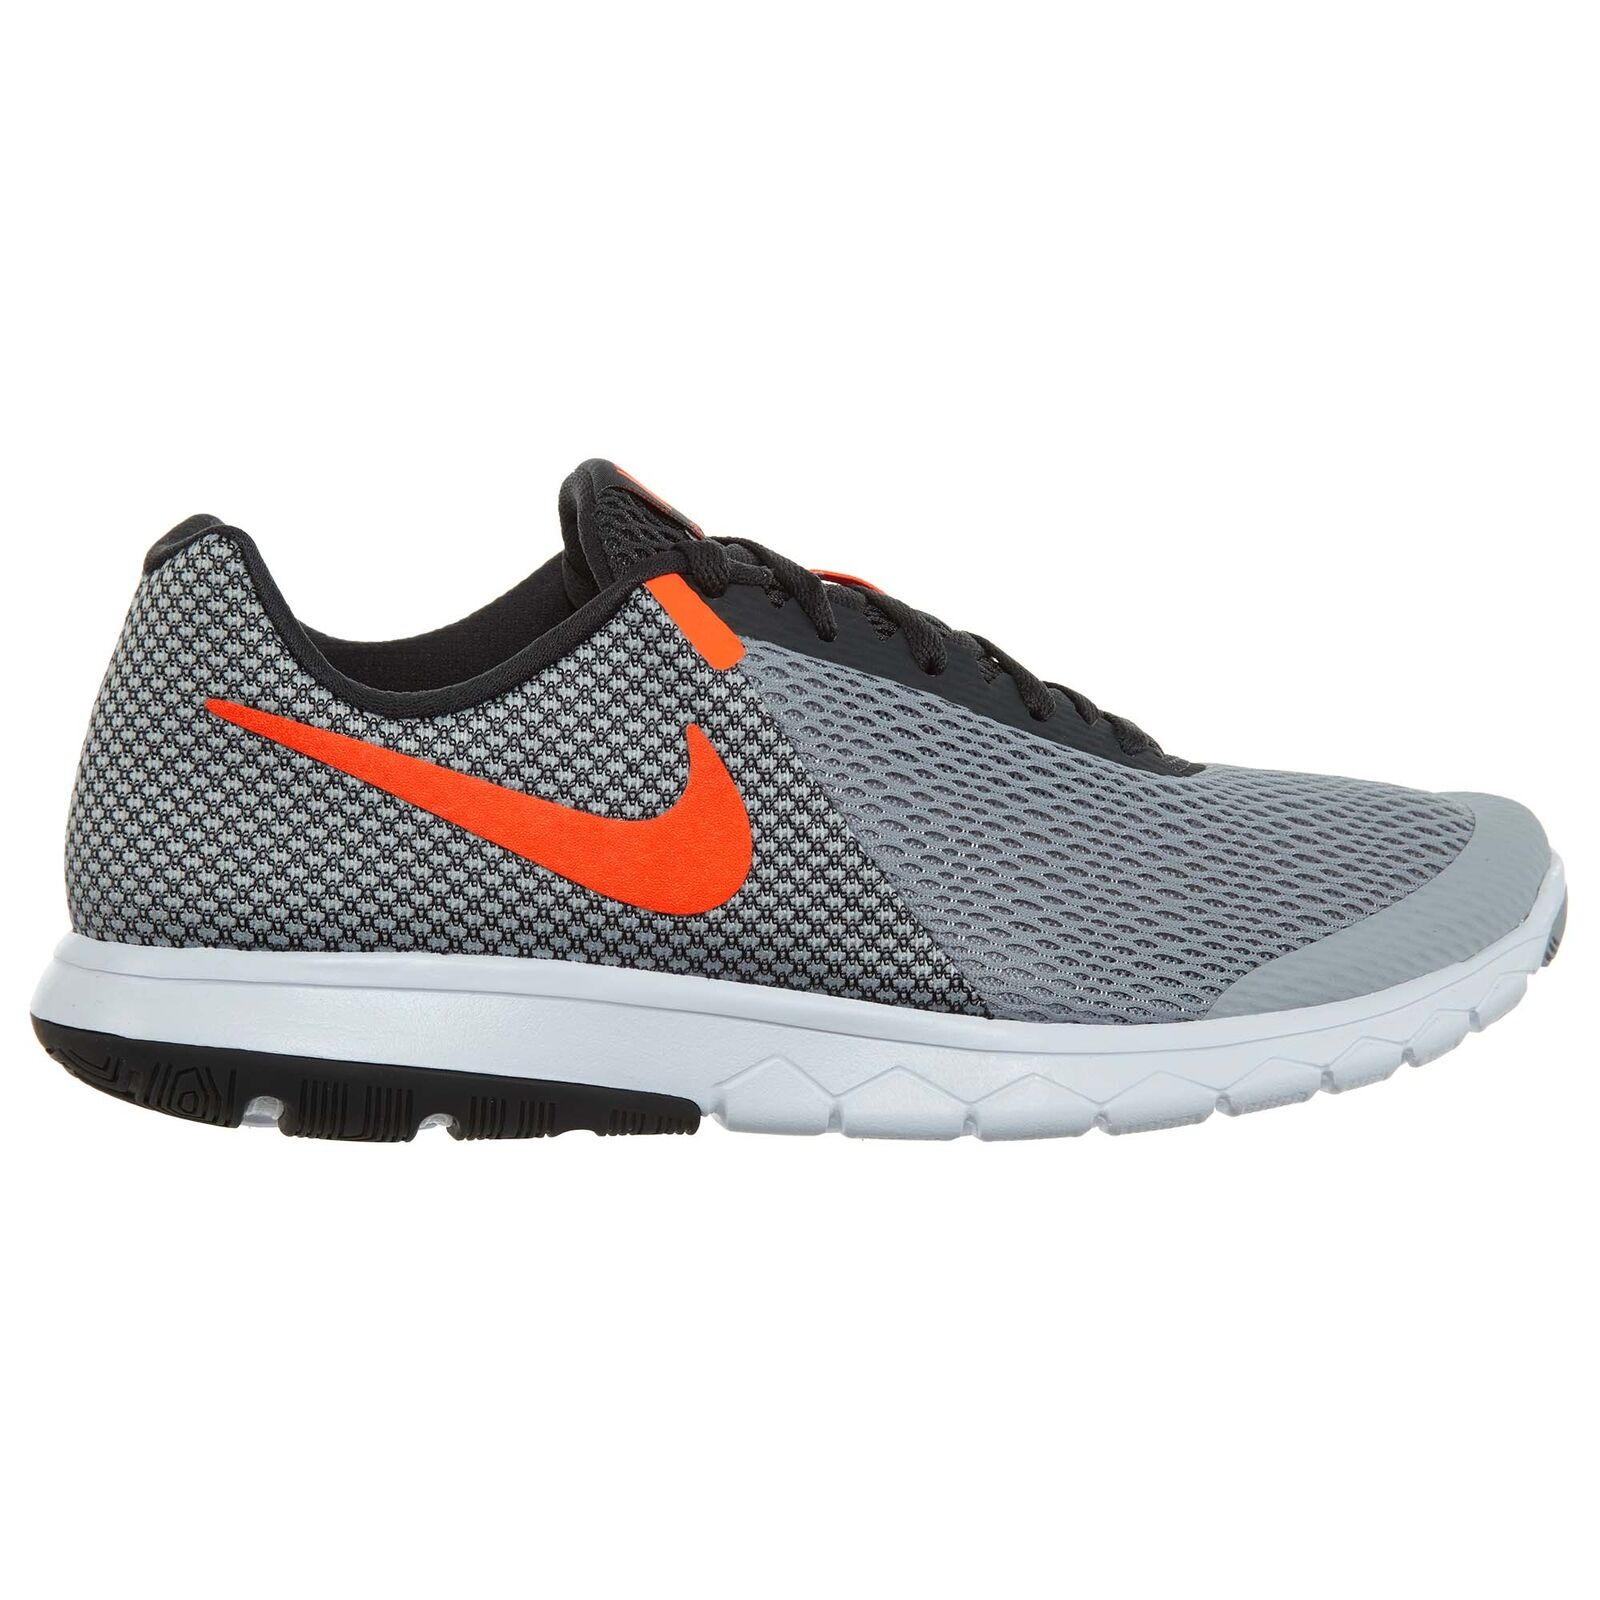 Nike Flex Experience RN 6 Mens 881802-009 Size Grey Crimson Running Shoes Size 881802-009 7.5 18db53